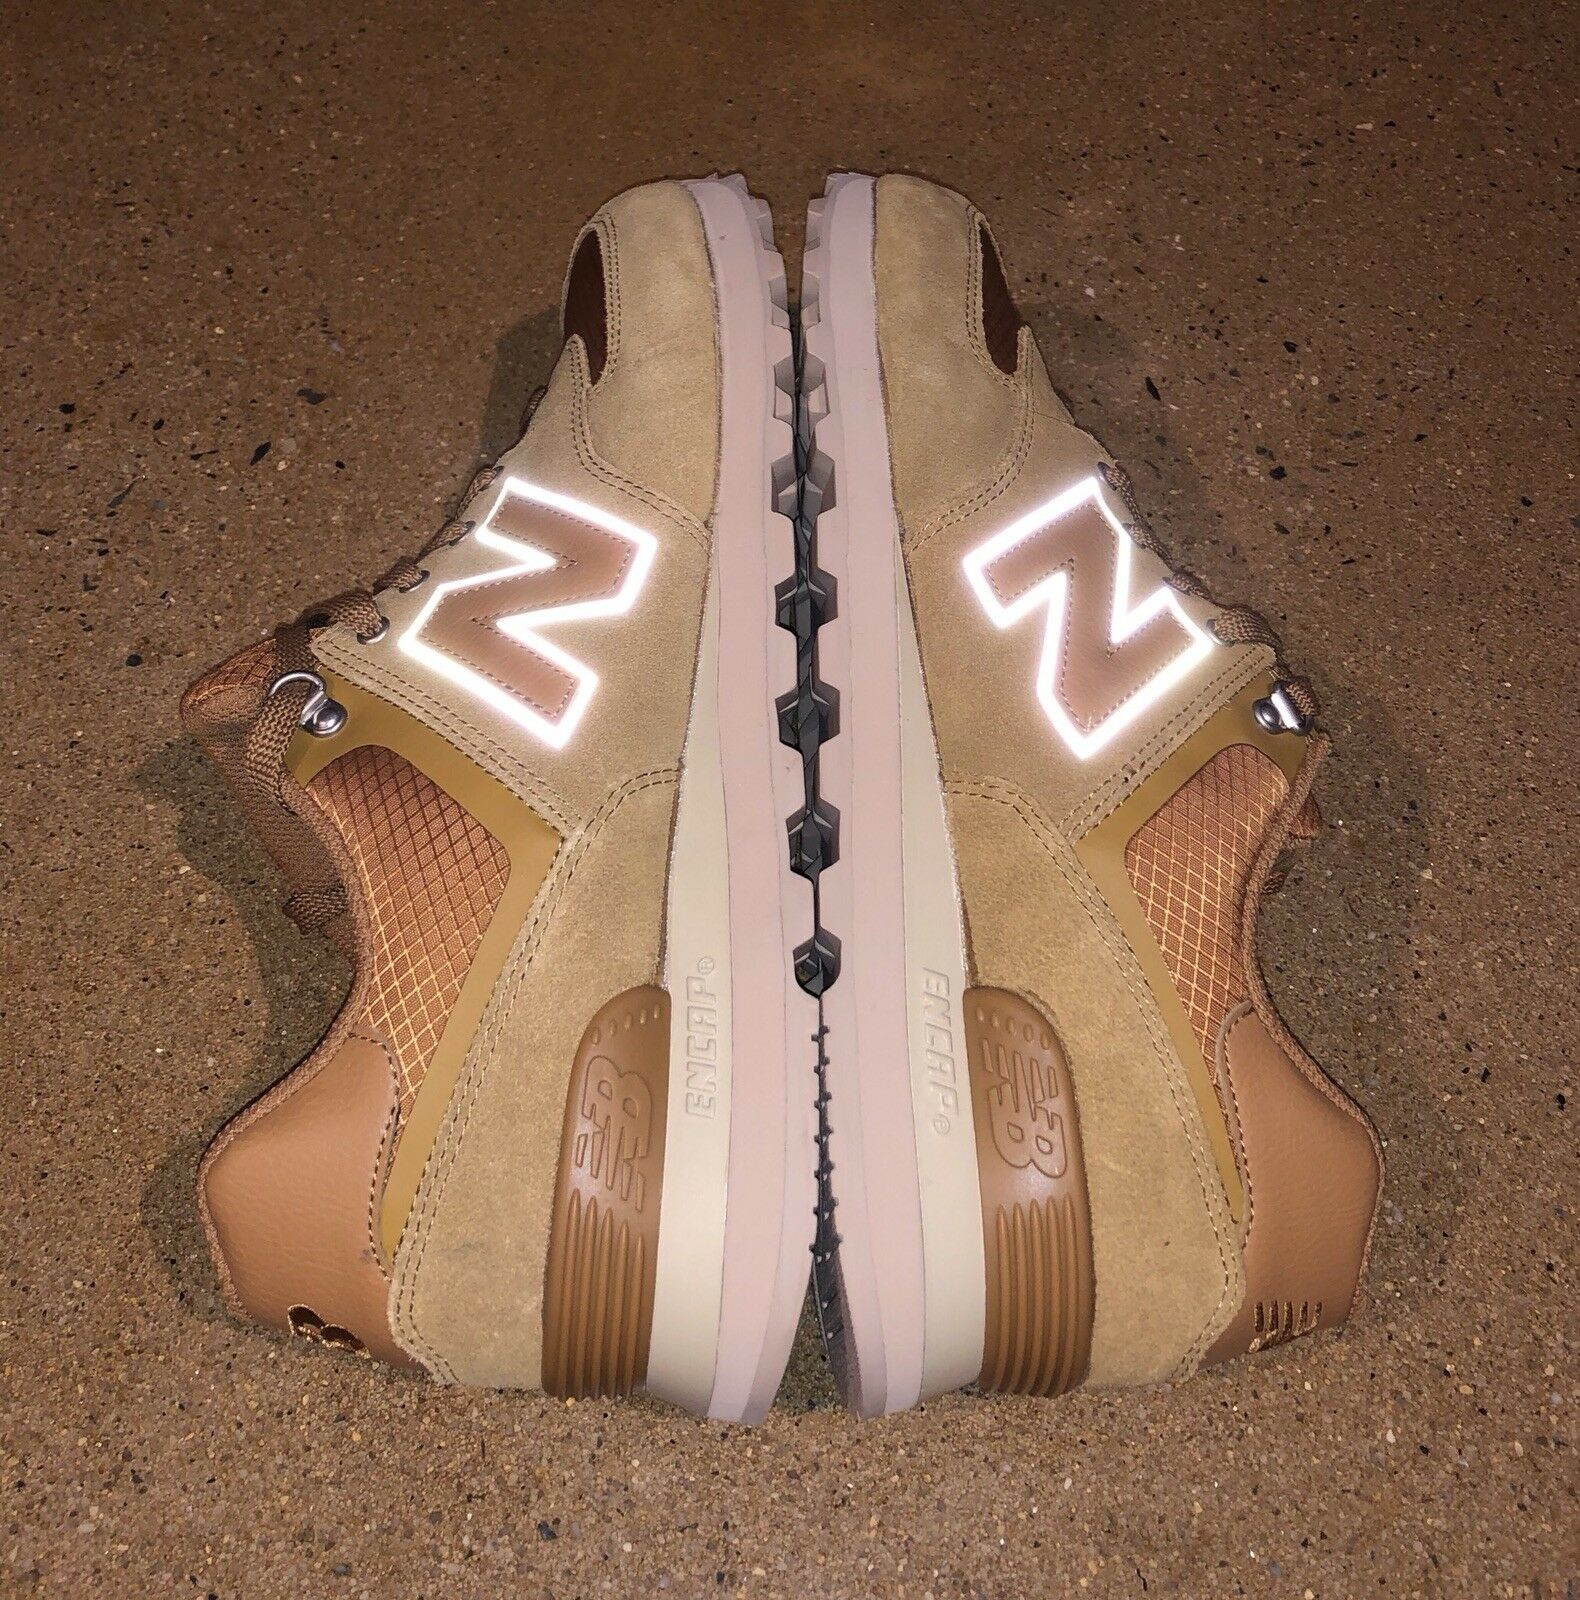 New Balance 574 Nutmeg Sand Size 10 US Running Sneakers shoes